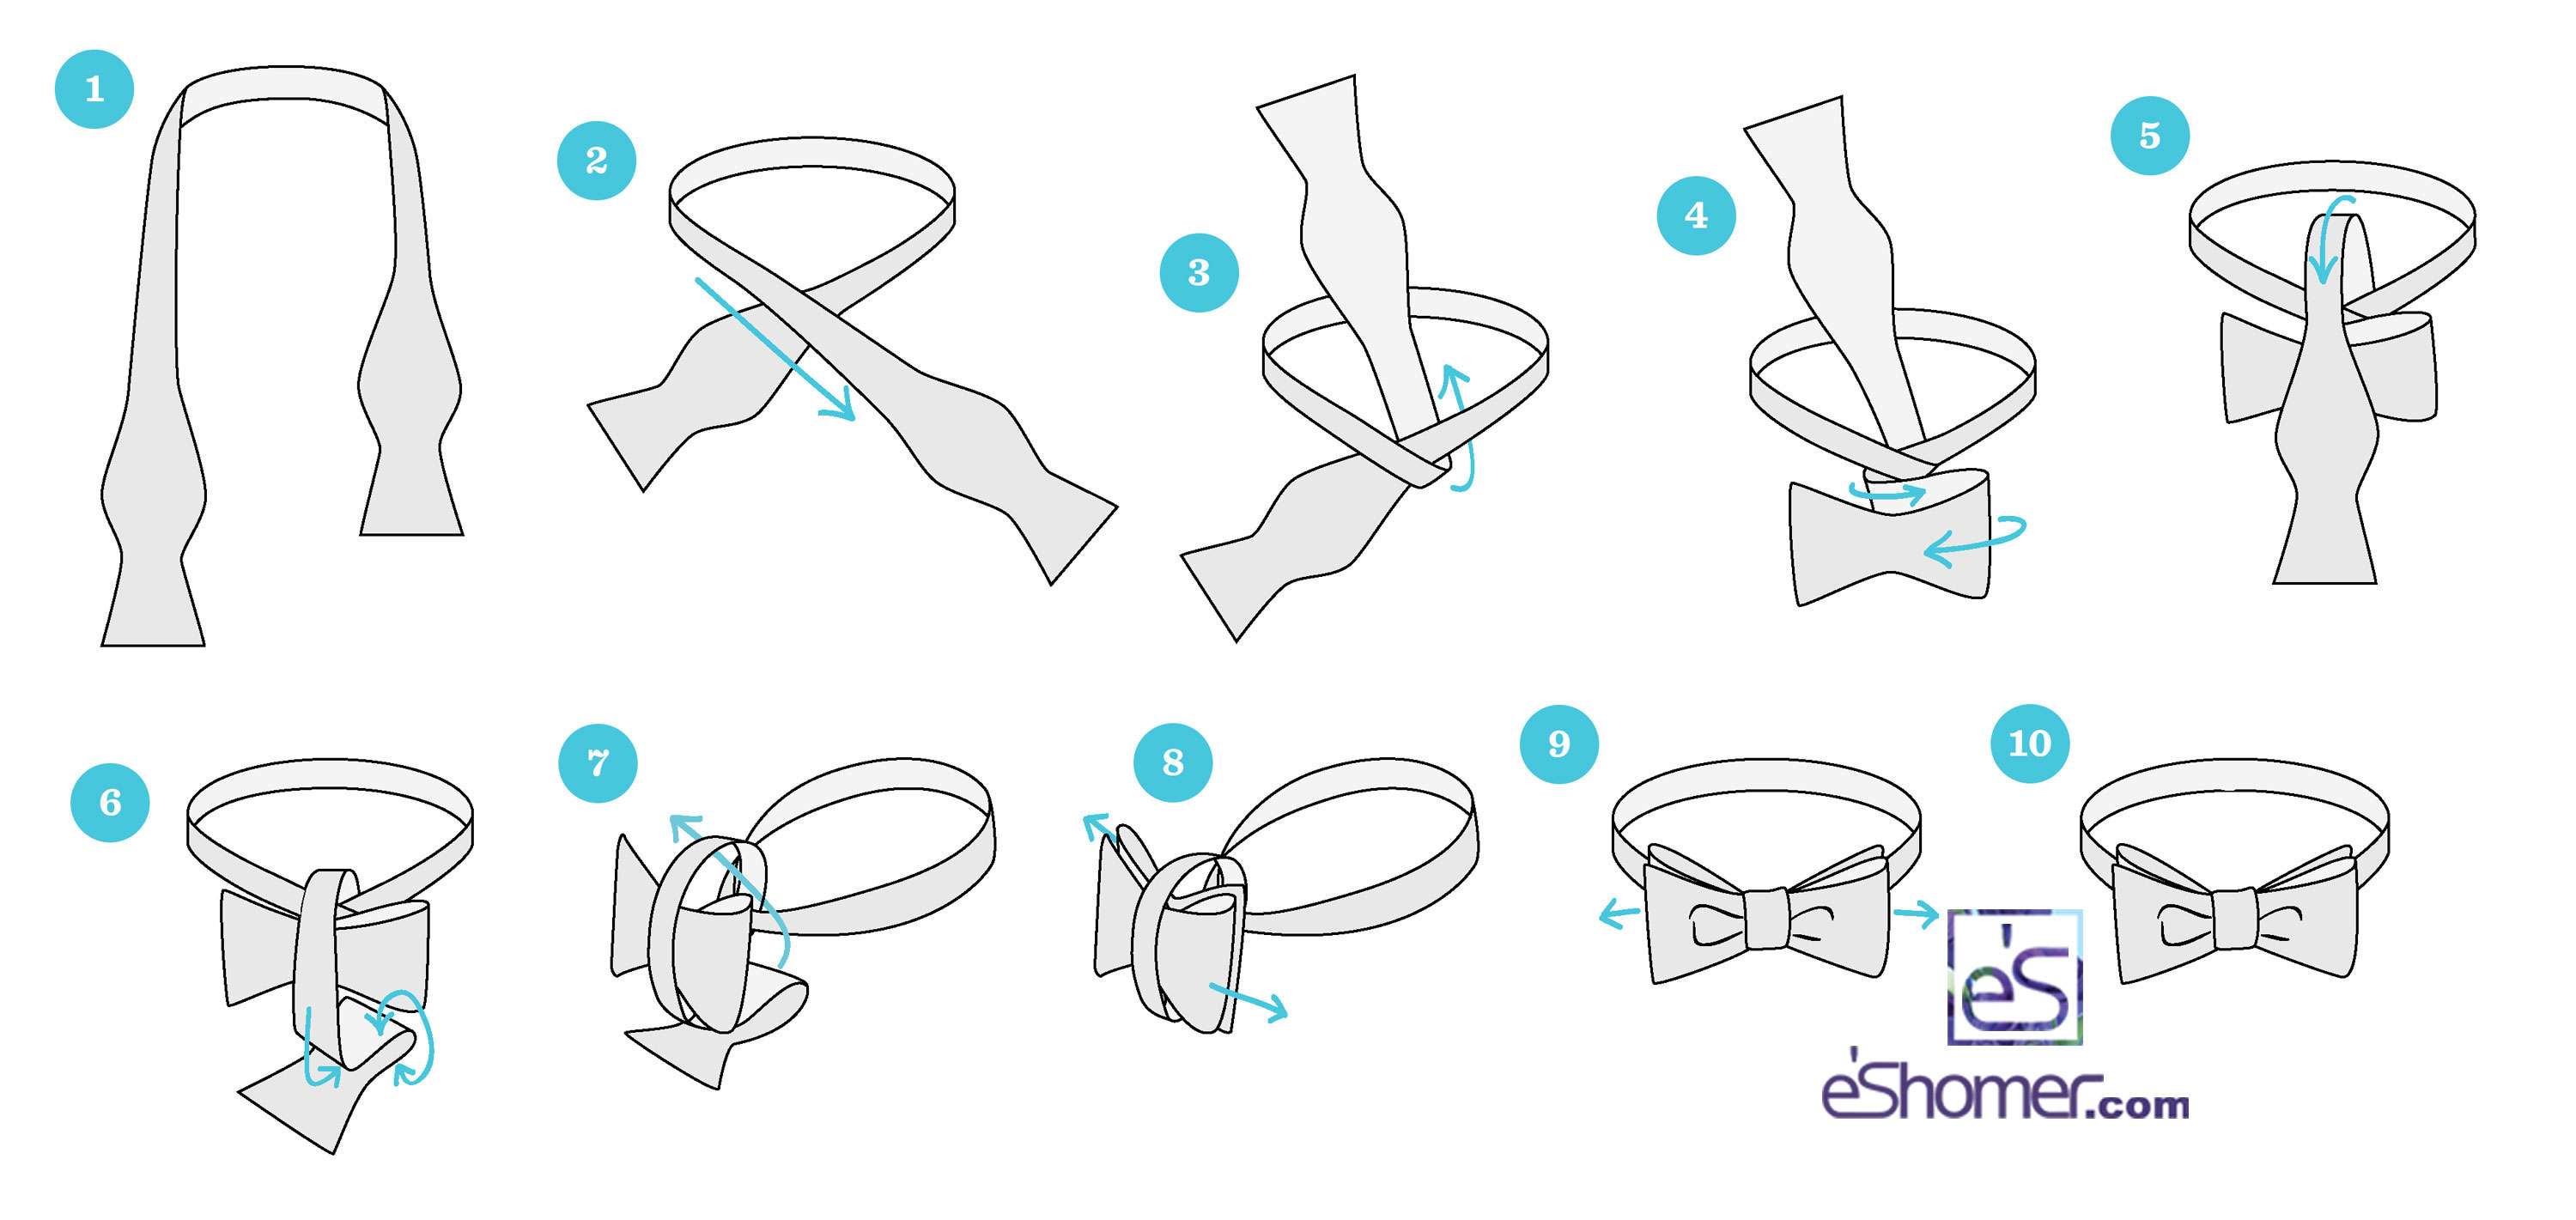 bow-tie-instructions-knot